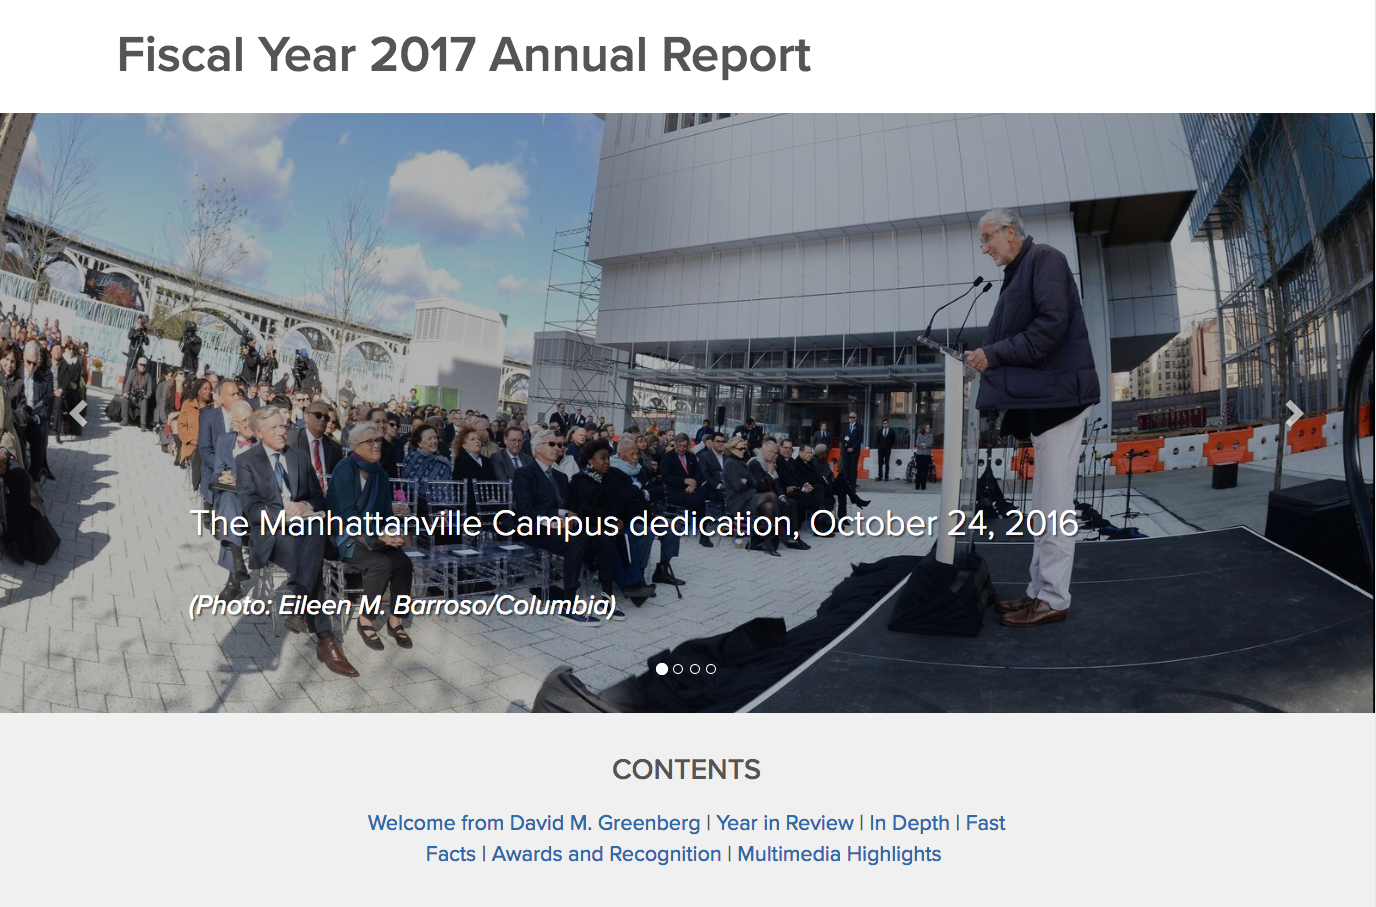 Facilities and Operations FY 2017 Annual Report